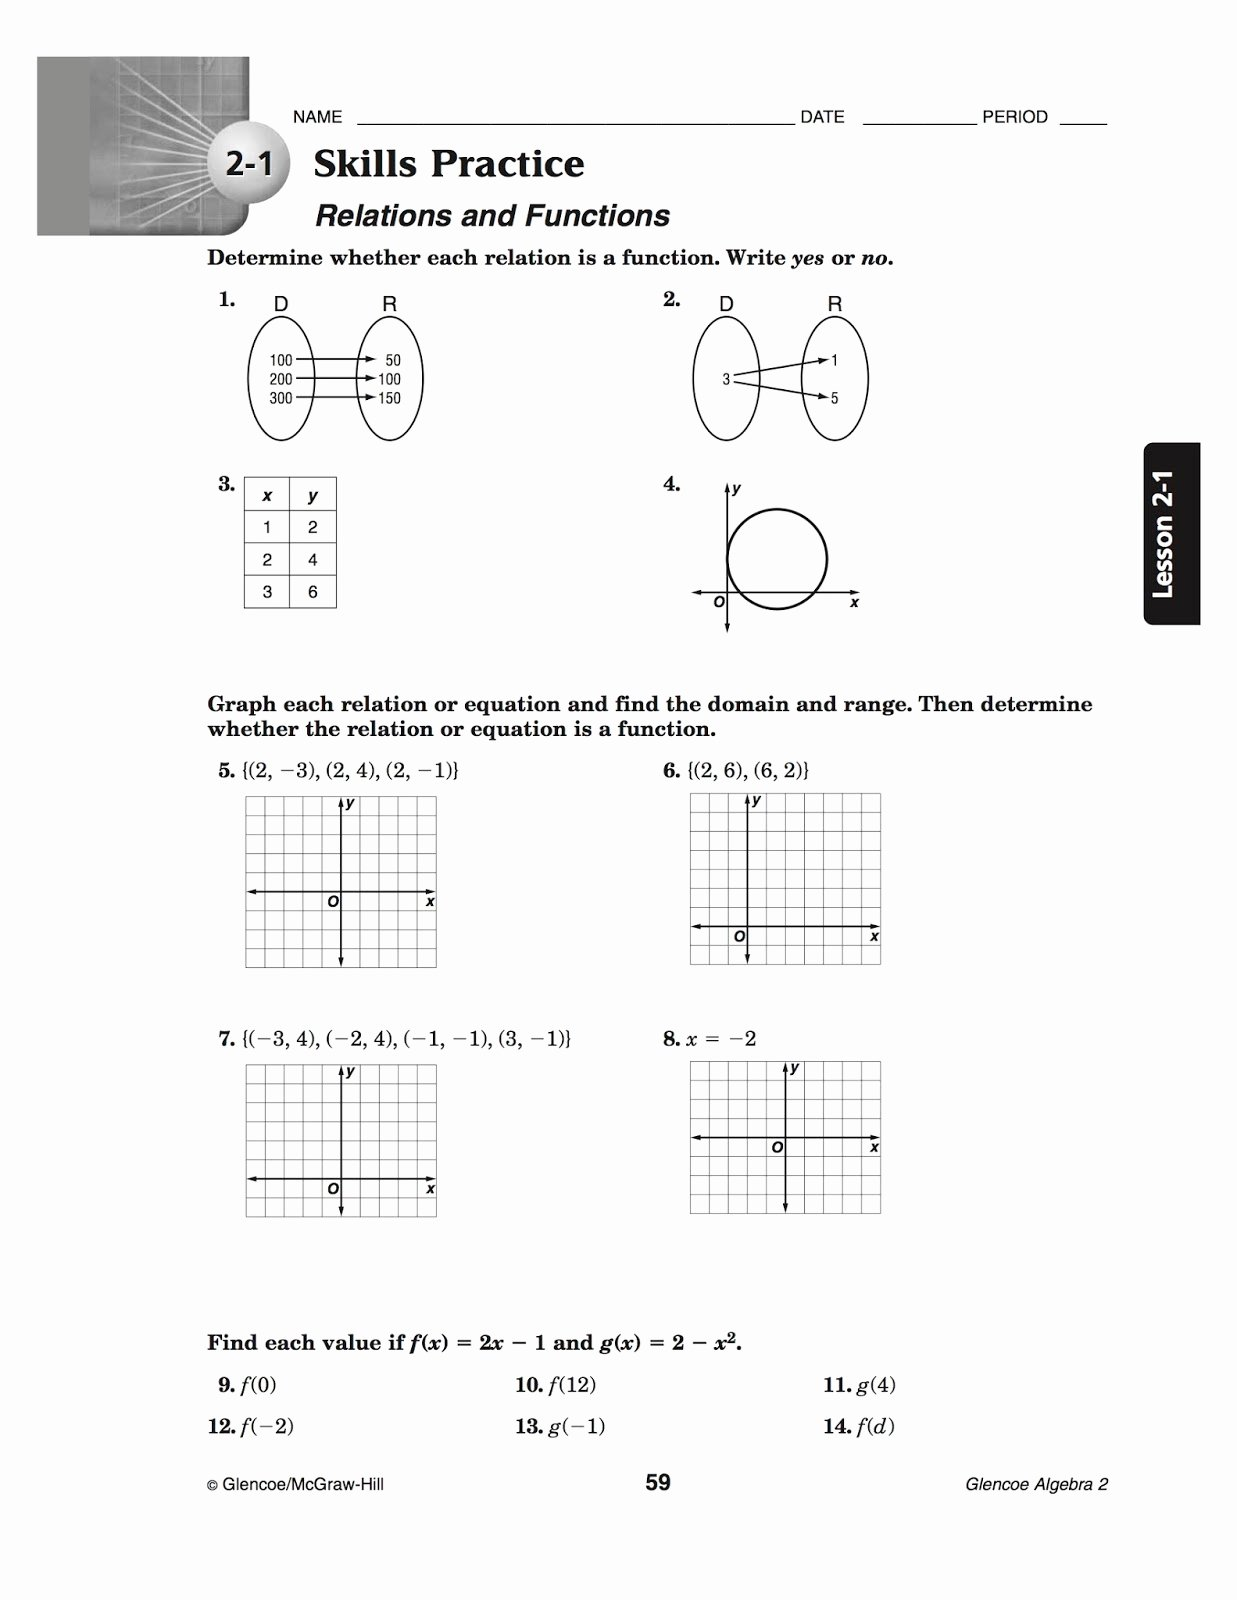 Relations and Functions Worksheet Luxury Bacs Algebra 2